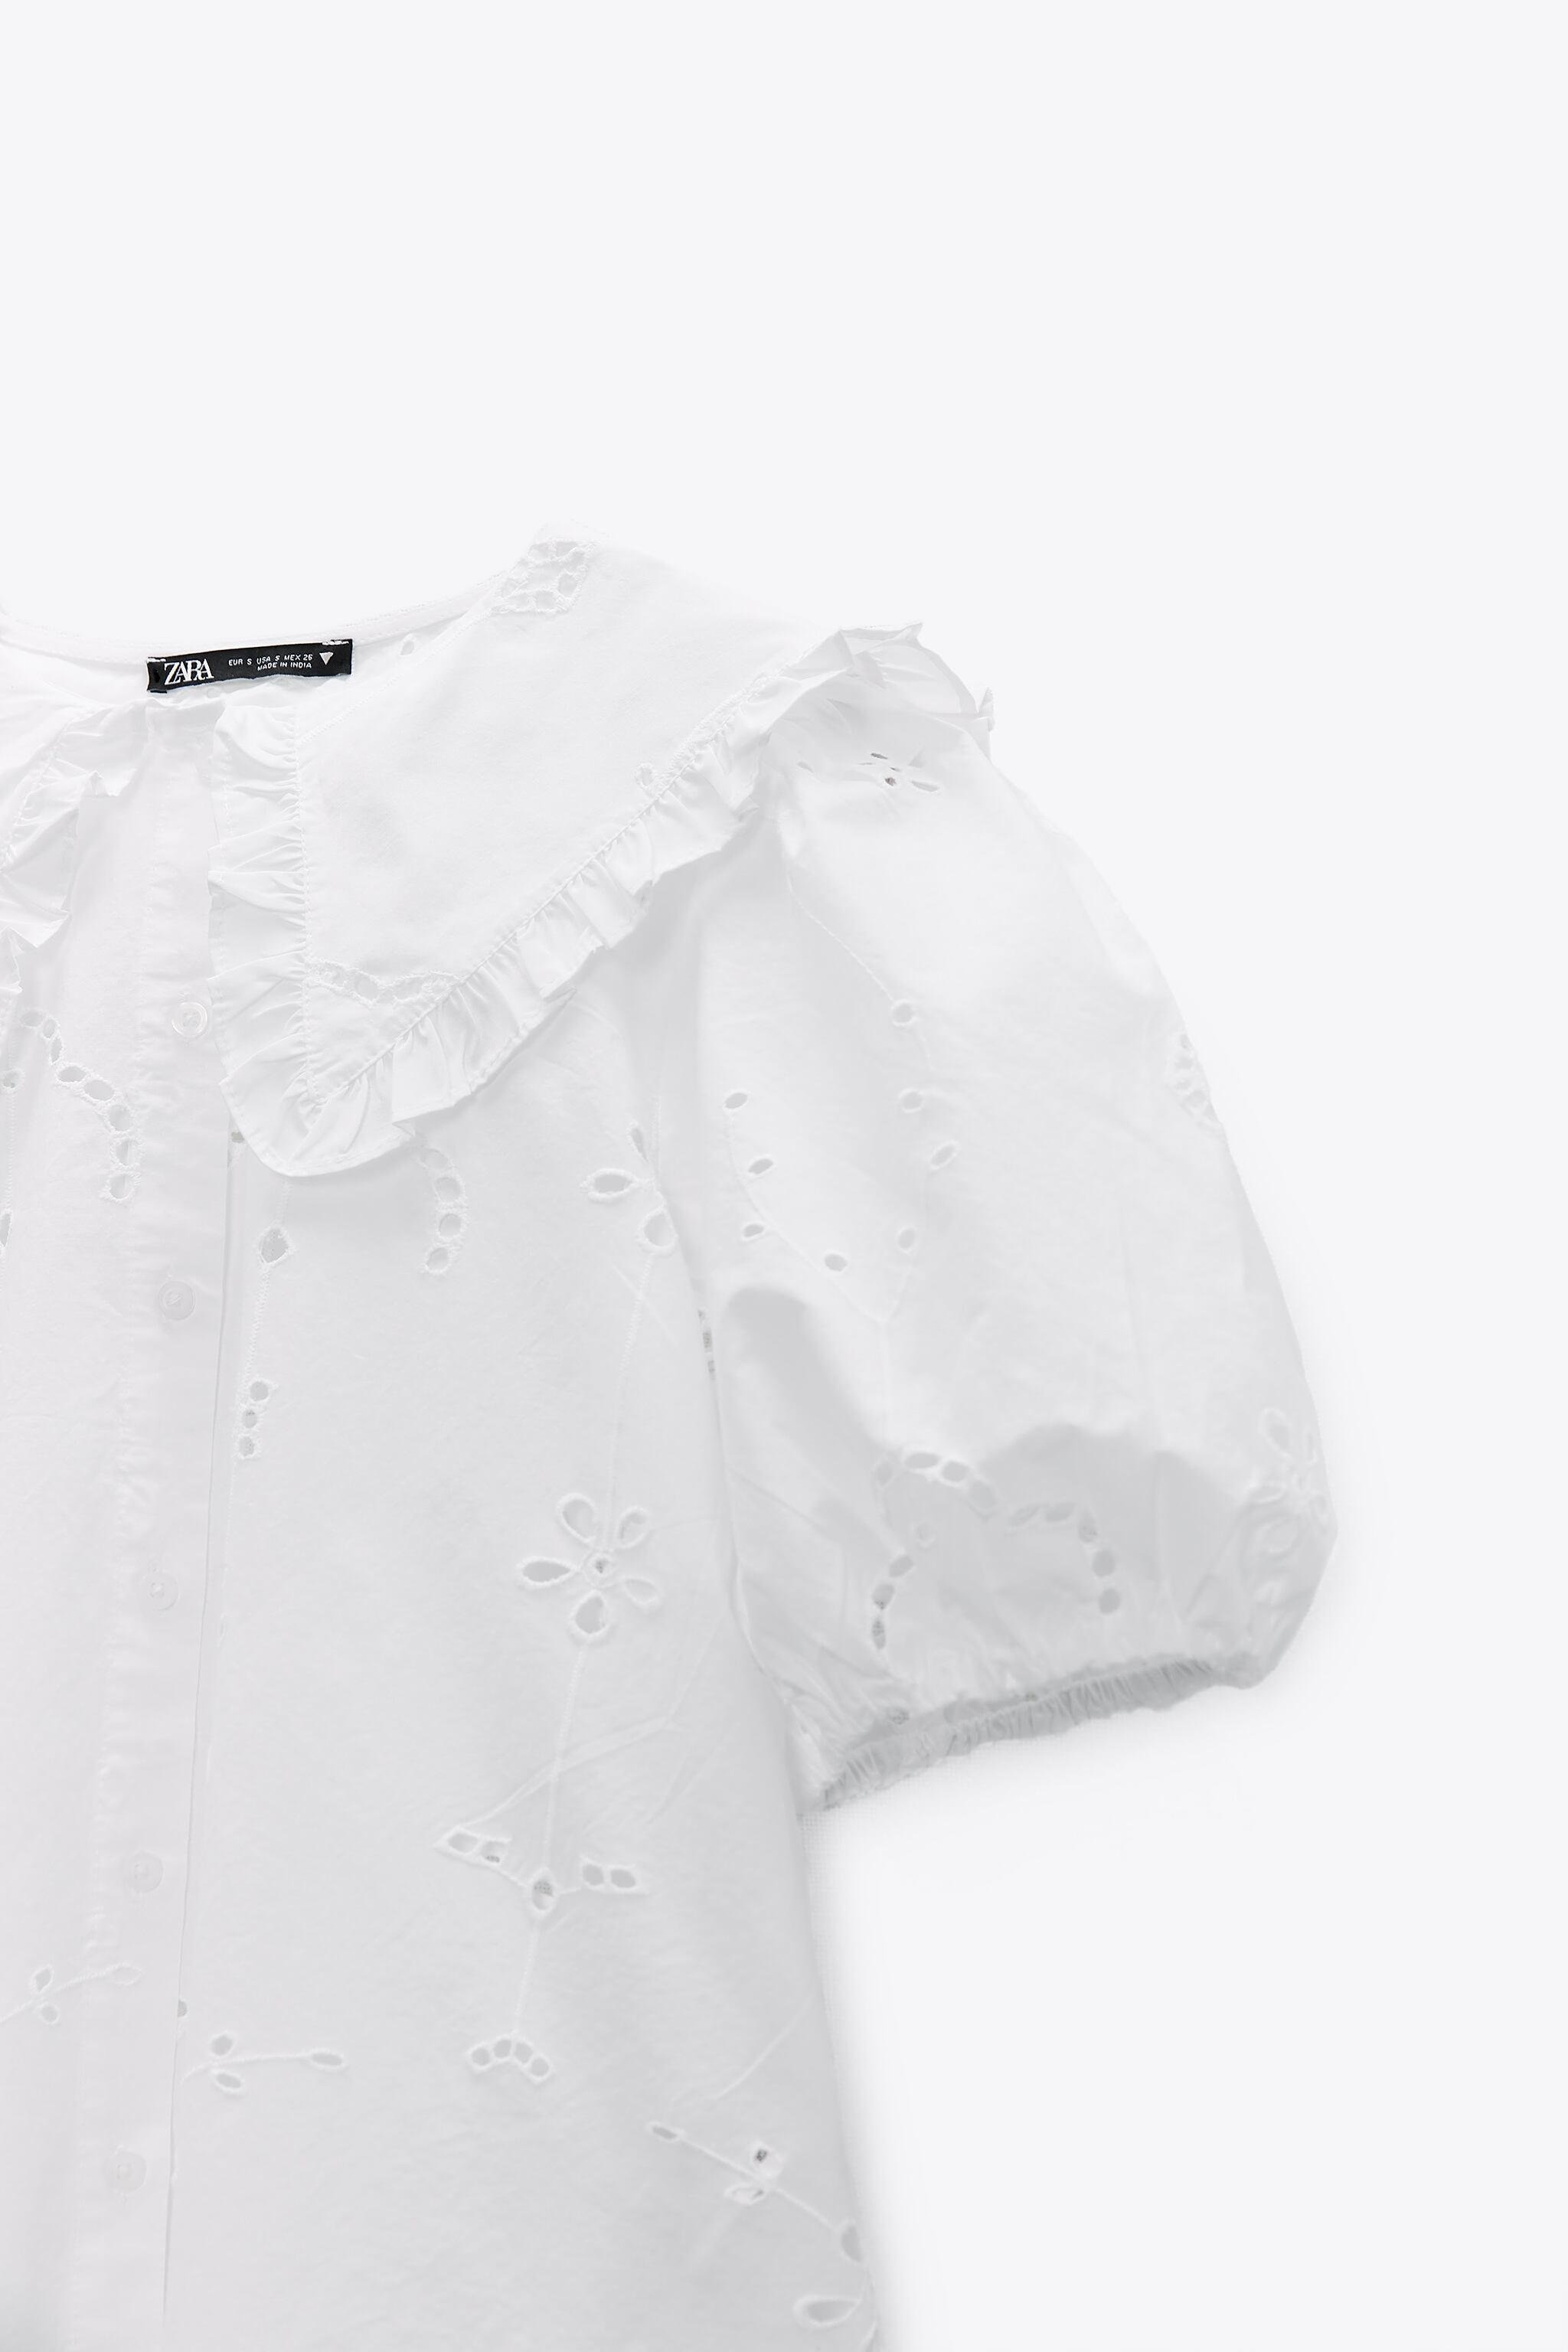 POPLIN TOP WITH EYELET EMBROIDERY 7